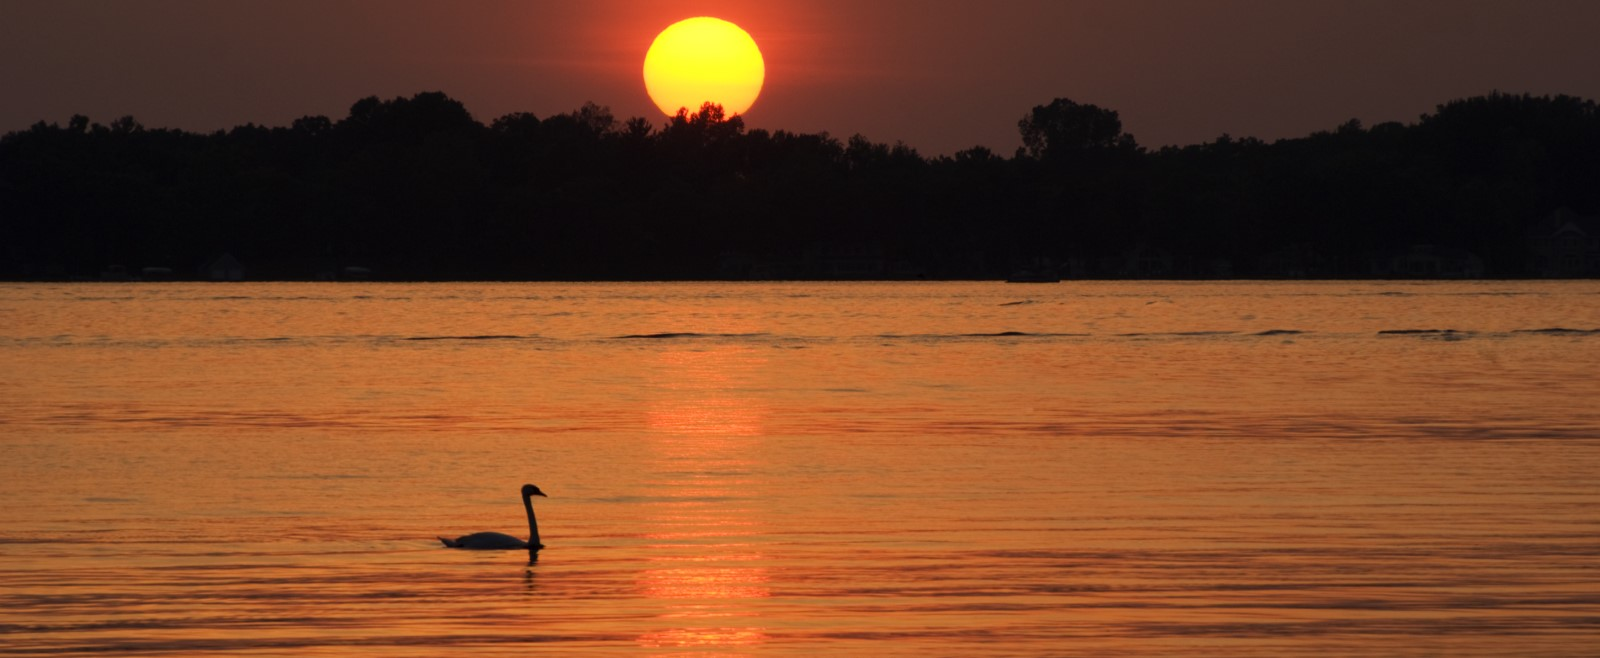 a bird swimming on a lake with the sunsetting